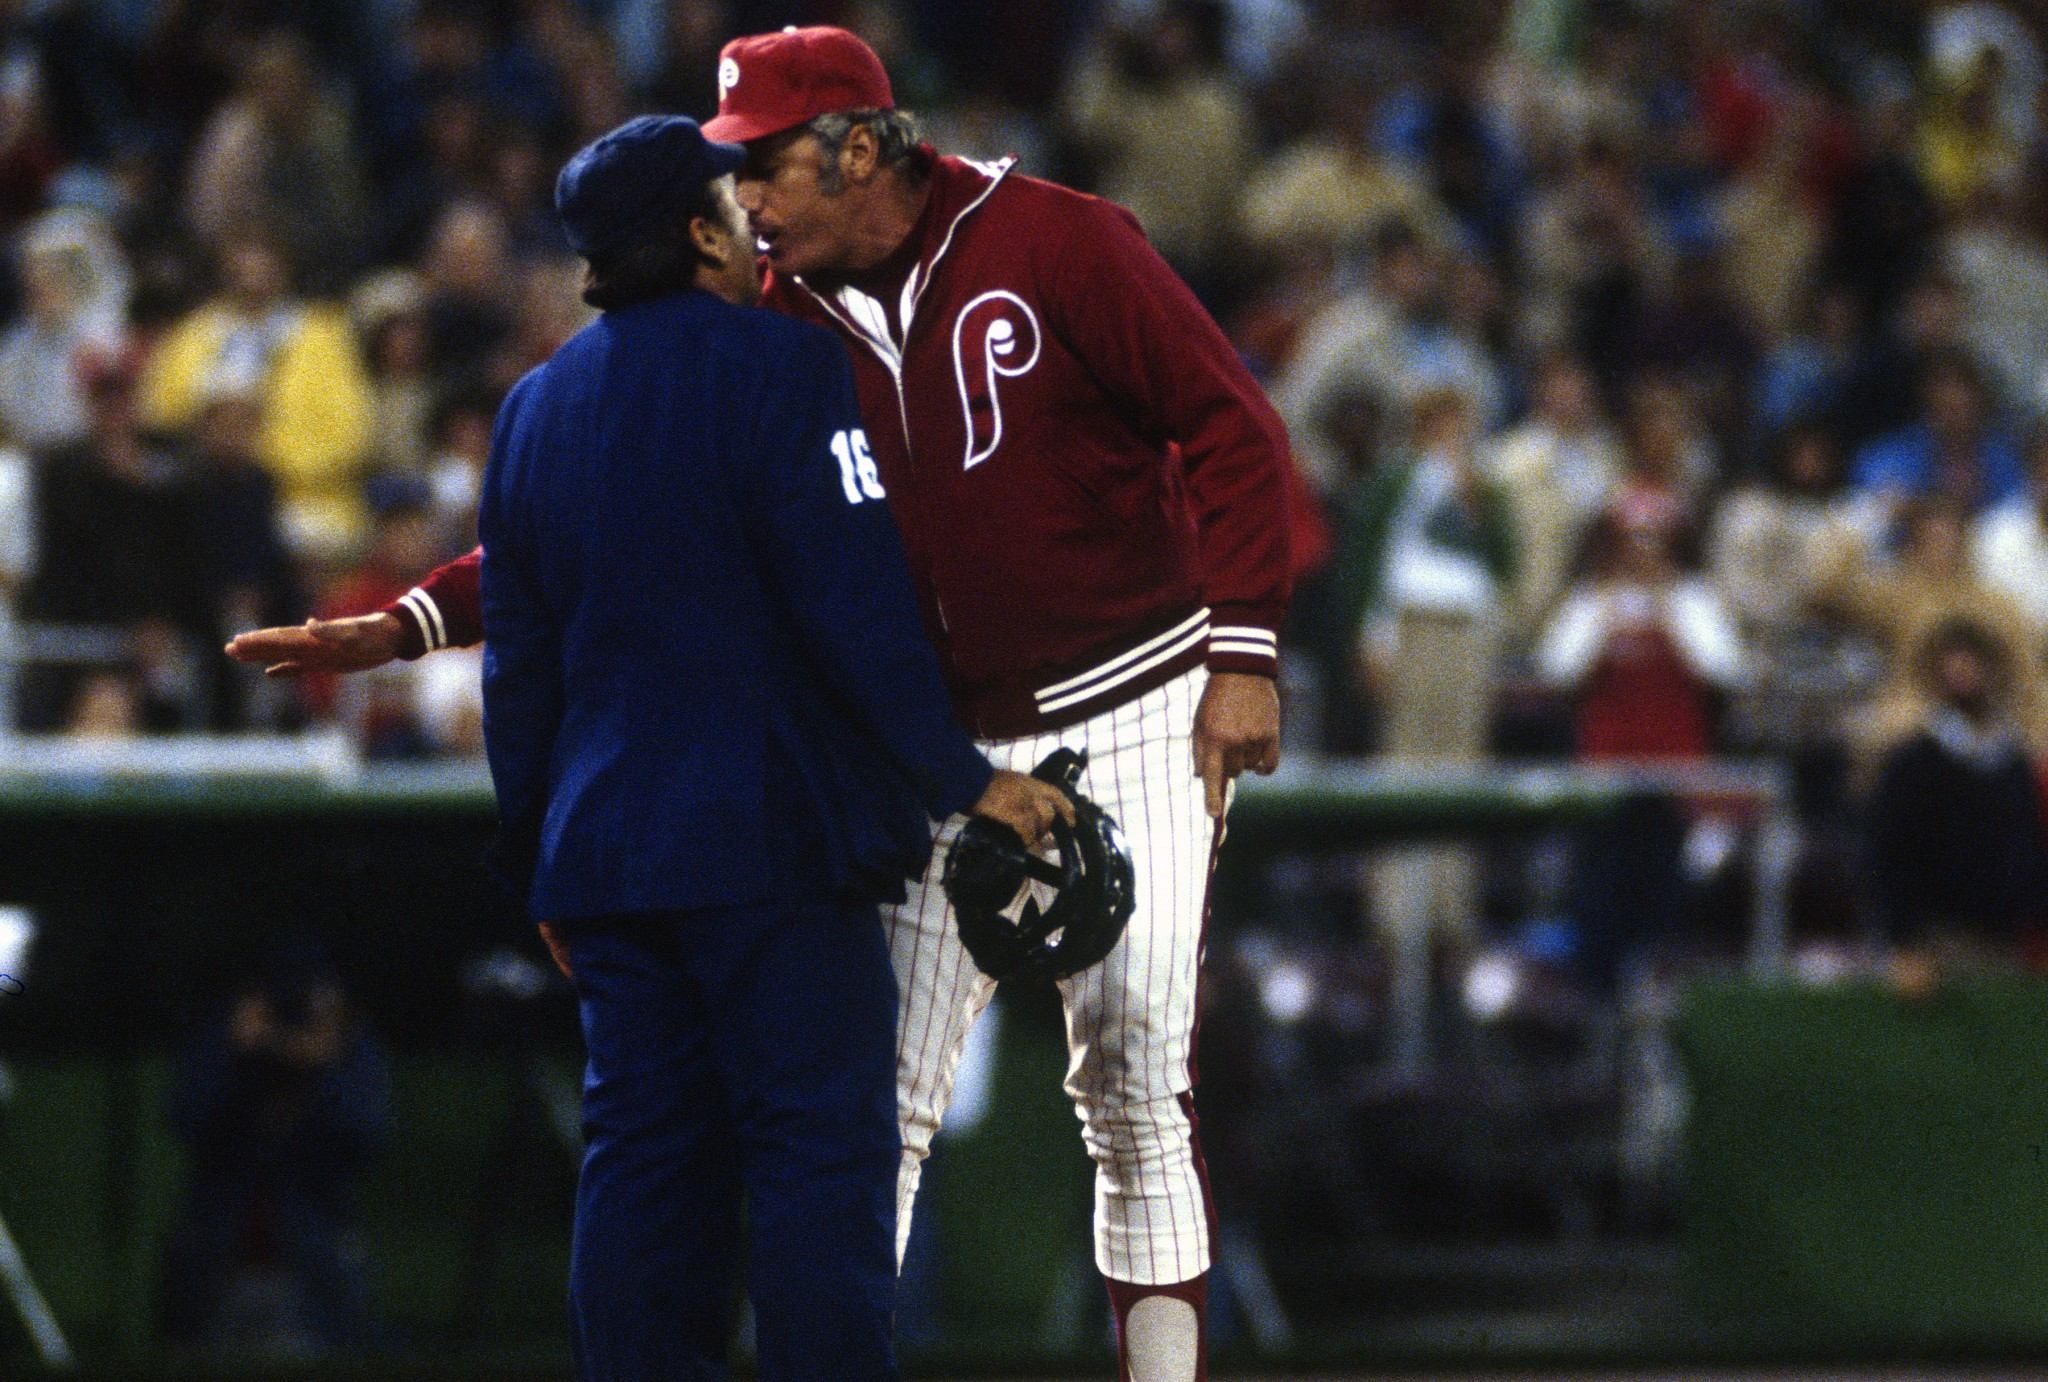 Dallas Green won a World Series with the Phillies in 1980. (Getty Images)